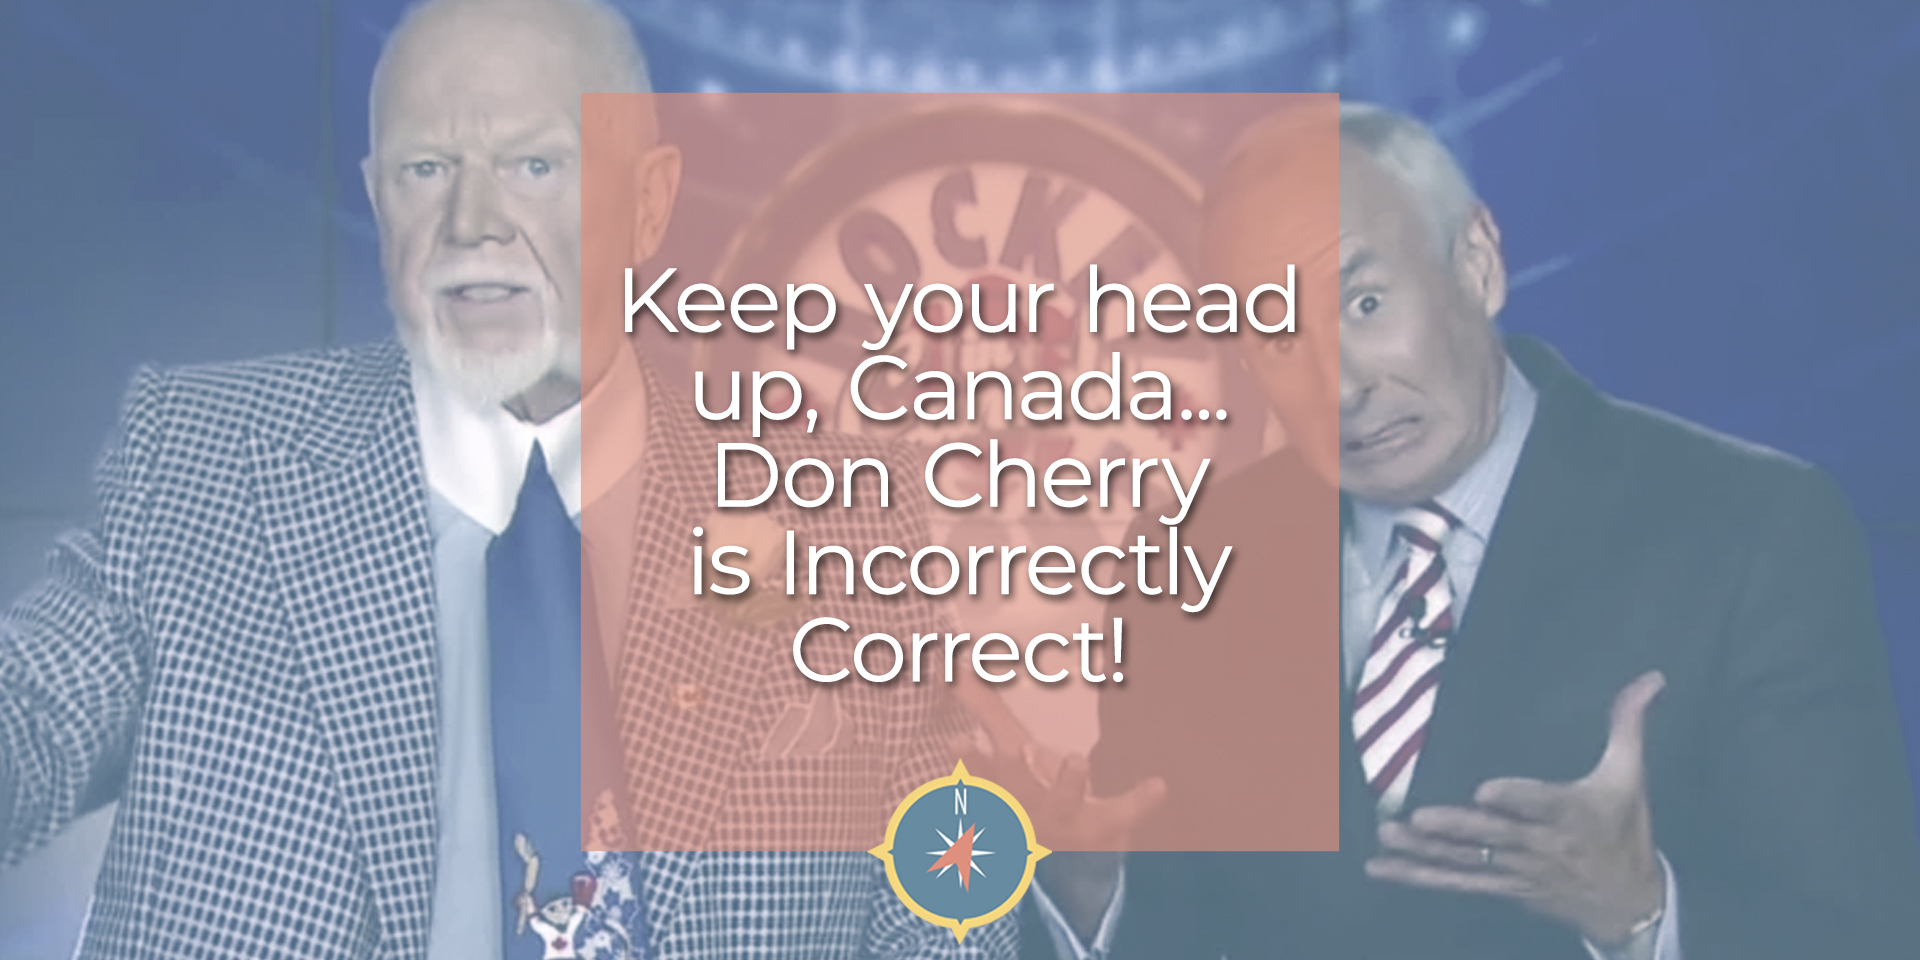 Don-Cherry-Incorrectly-Correct-Poppy-Free-Speech